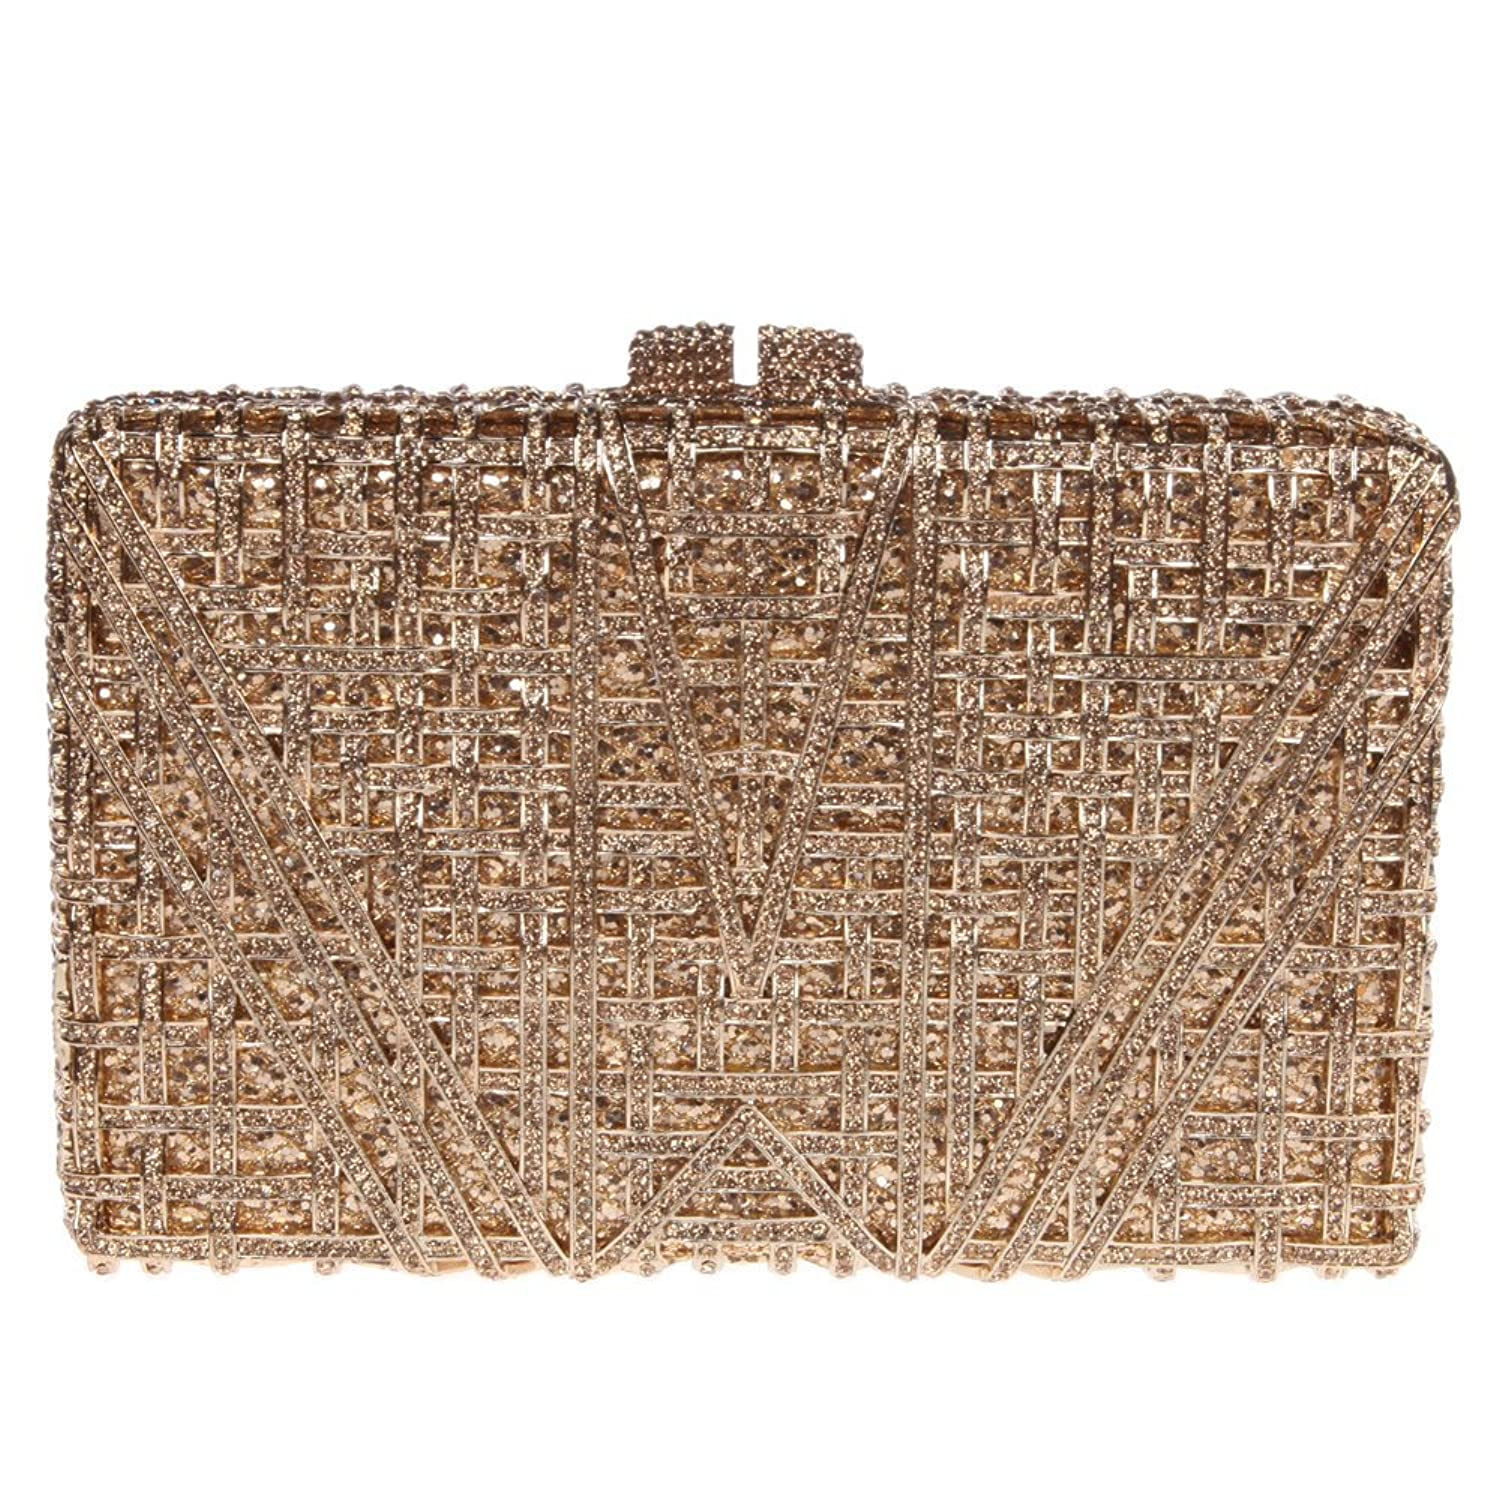 Santimon Women Clutch Hollow Out Box Envelope Rhinestone Evening Bags with Removable Strap